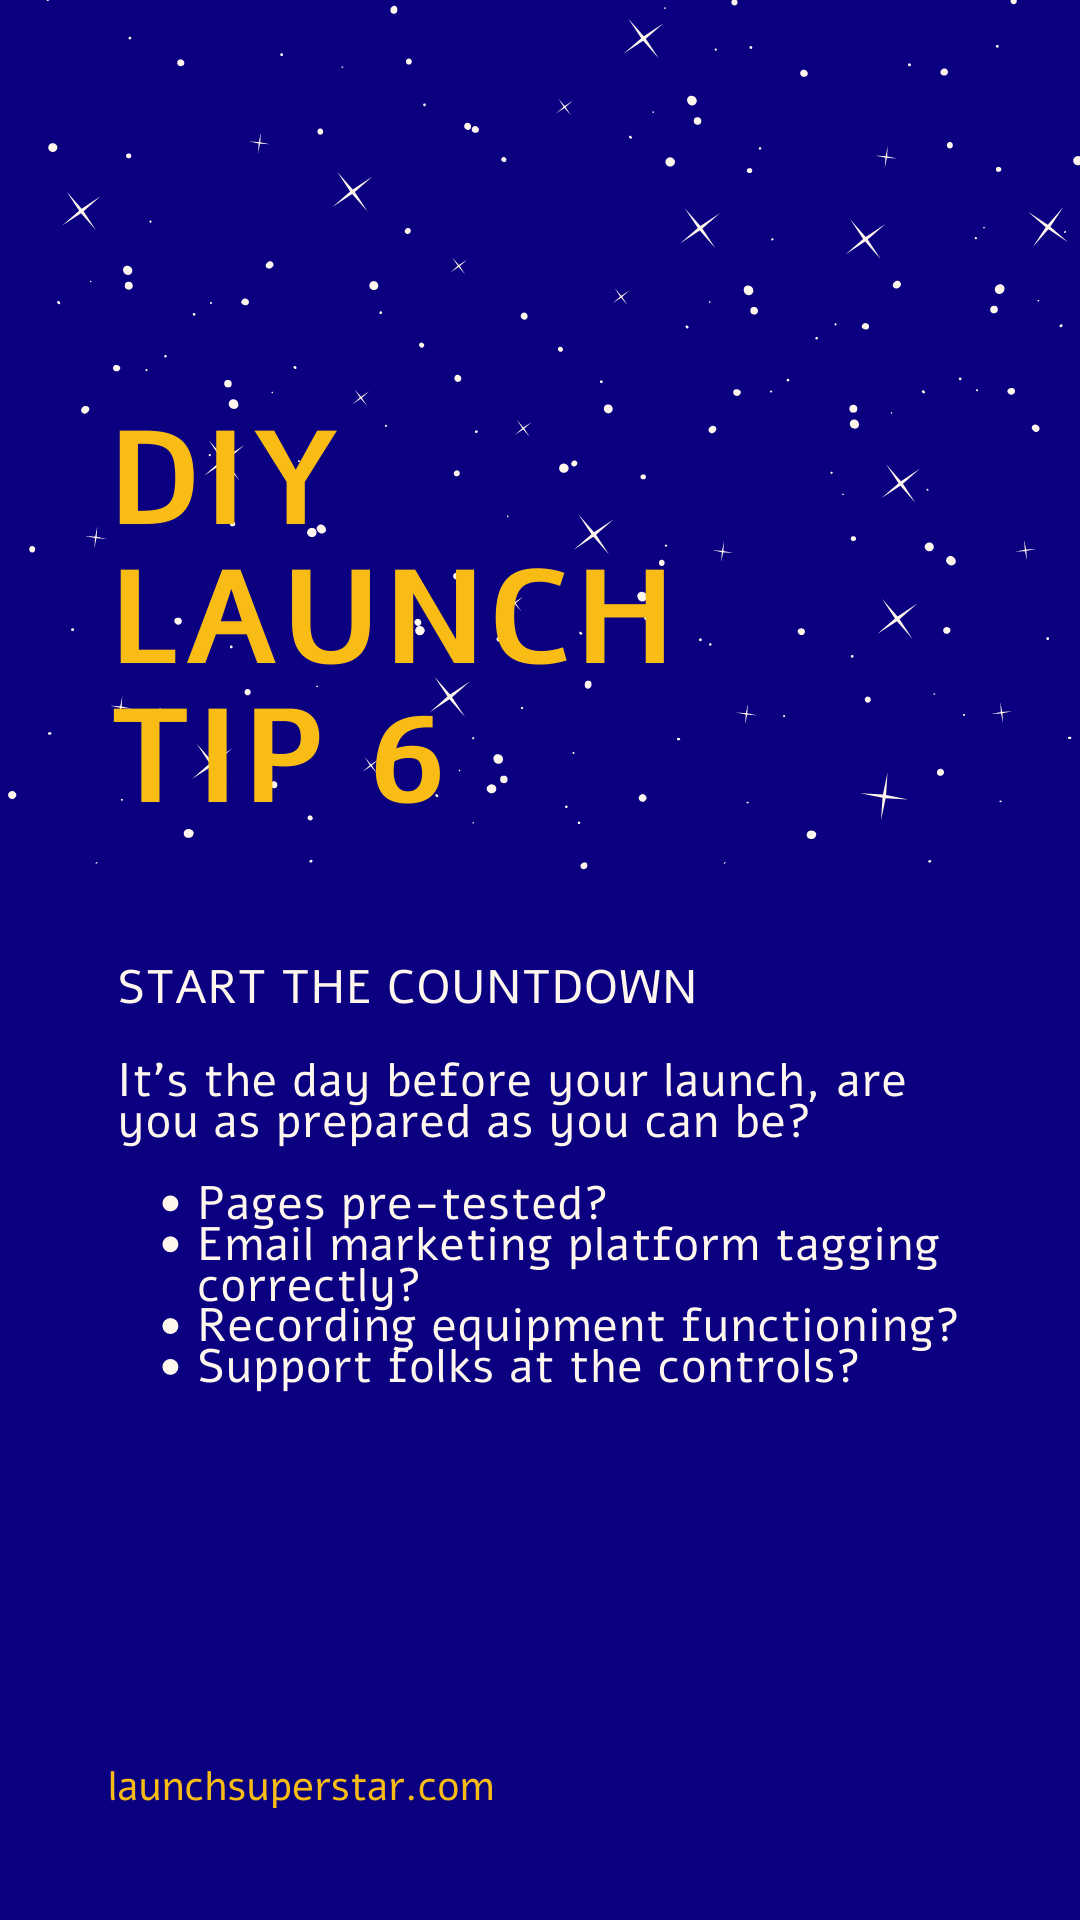 DIY Launch tip 6